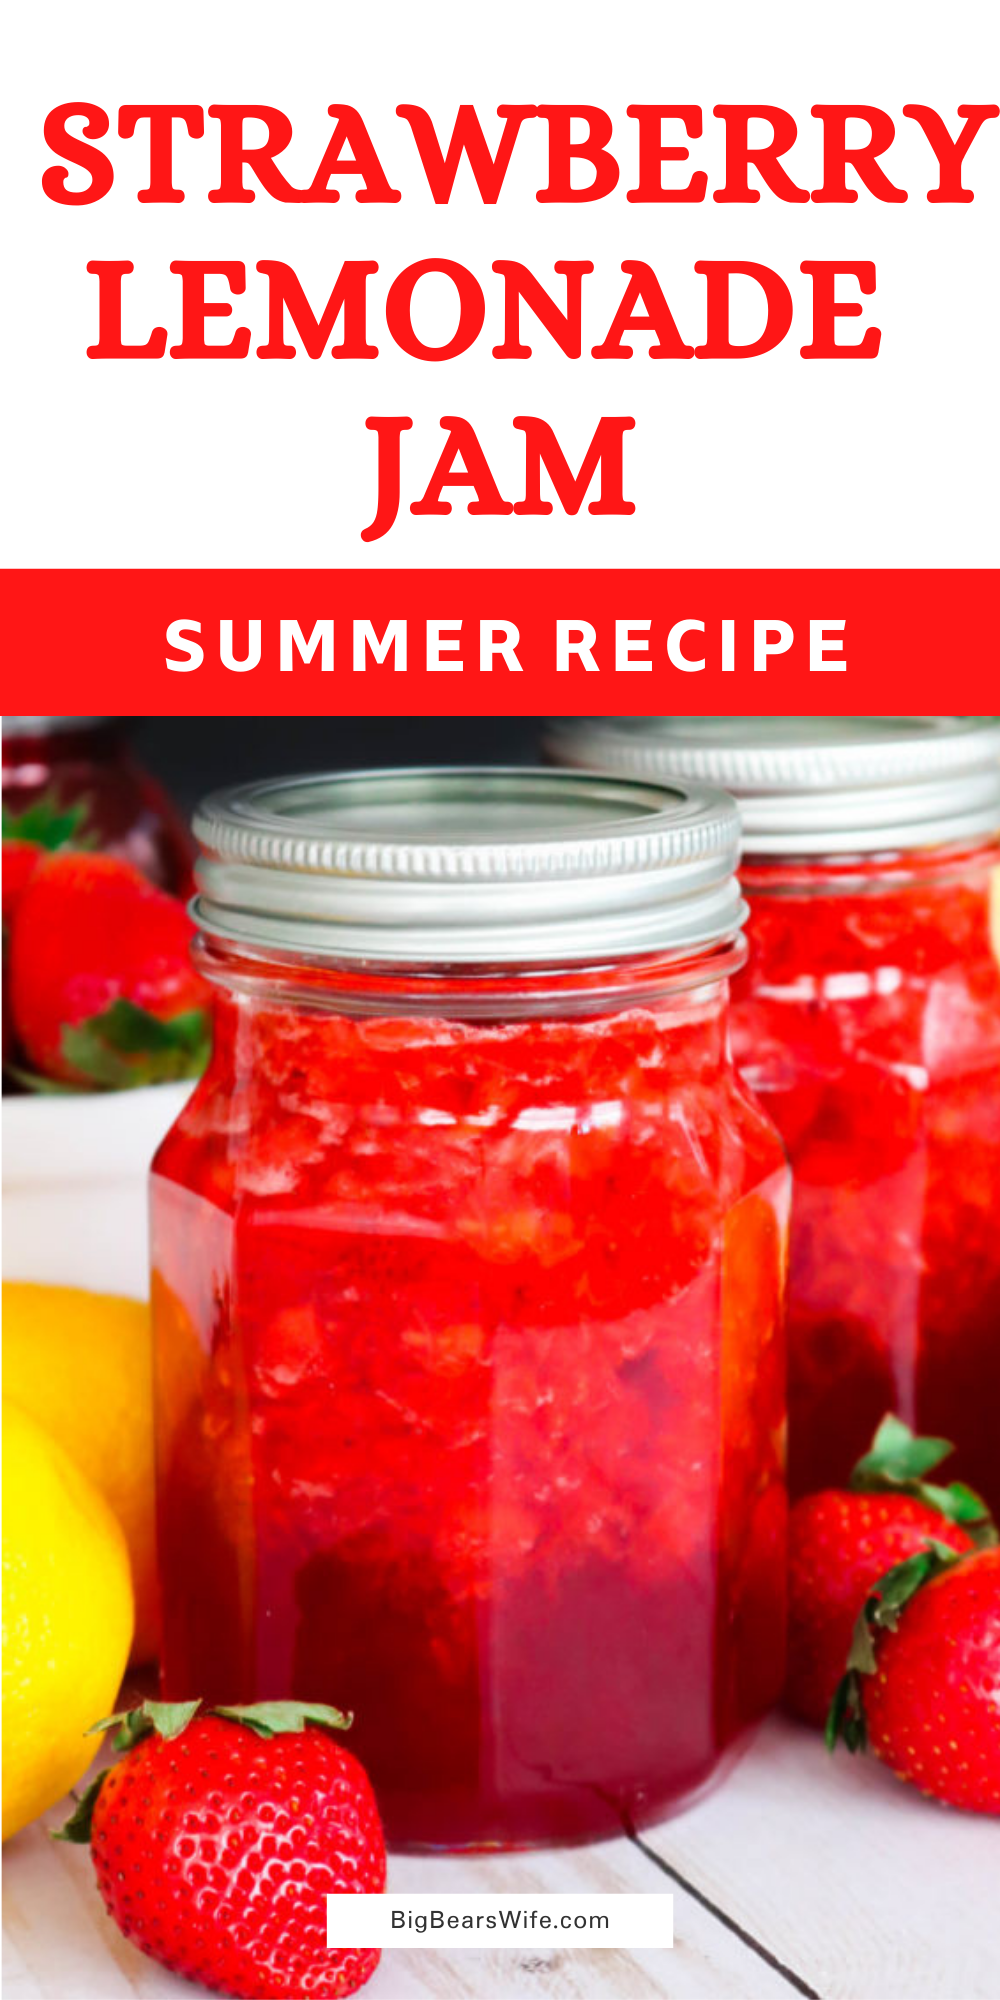 Strawberries and summer lemonade stands come together to create this delicious Strawberry Lemonade Jam. Tastes yummy on biscuits, in a peanut butter and jelly sandwich, or on toast.  Plus, there is no fancy canning equipment involved! Refrigerate for up to 3 weeks or freeze up to 1 year. via @bigbearswife